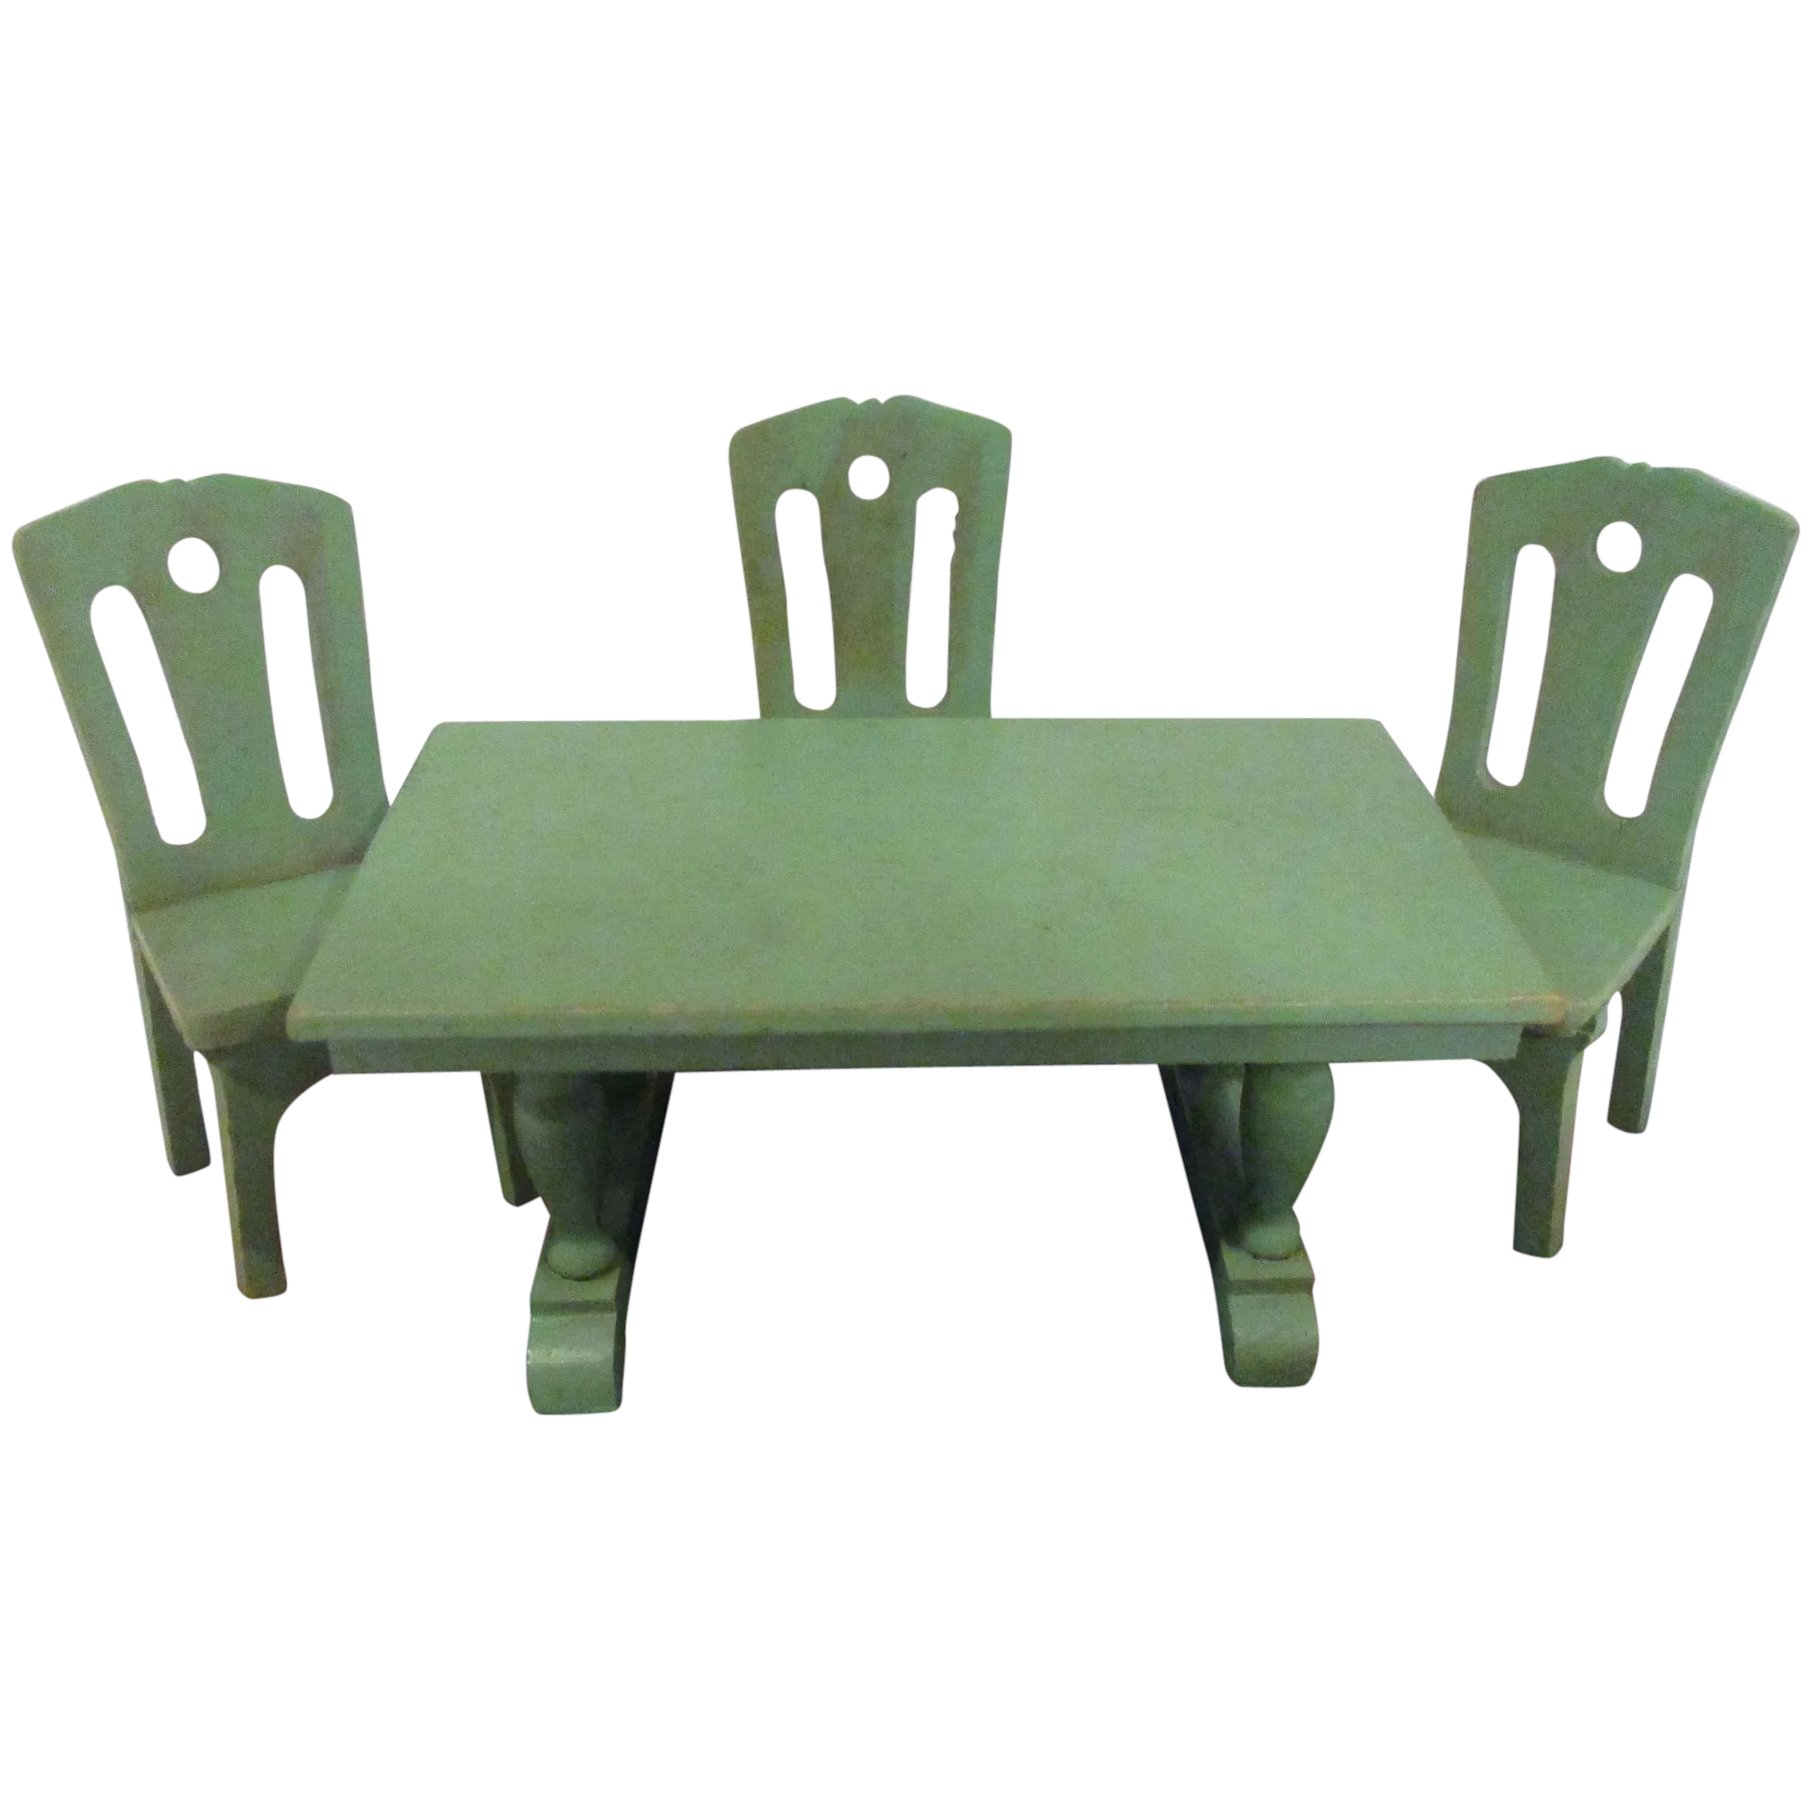 Vintage Strombecker 1930s Dining Room Green Table 3 Chairs Doll House Set